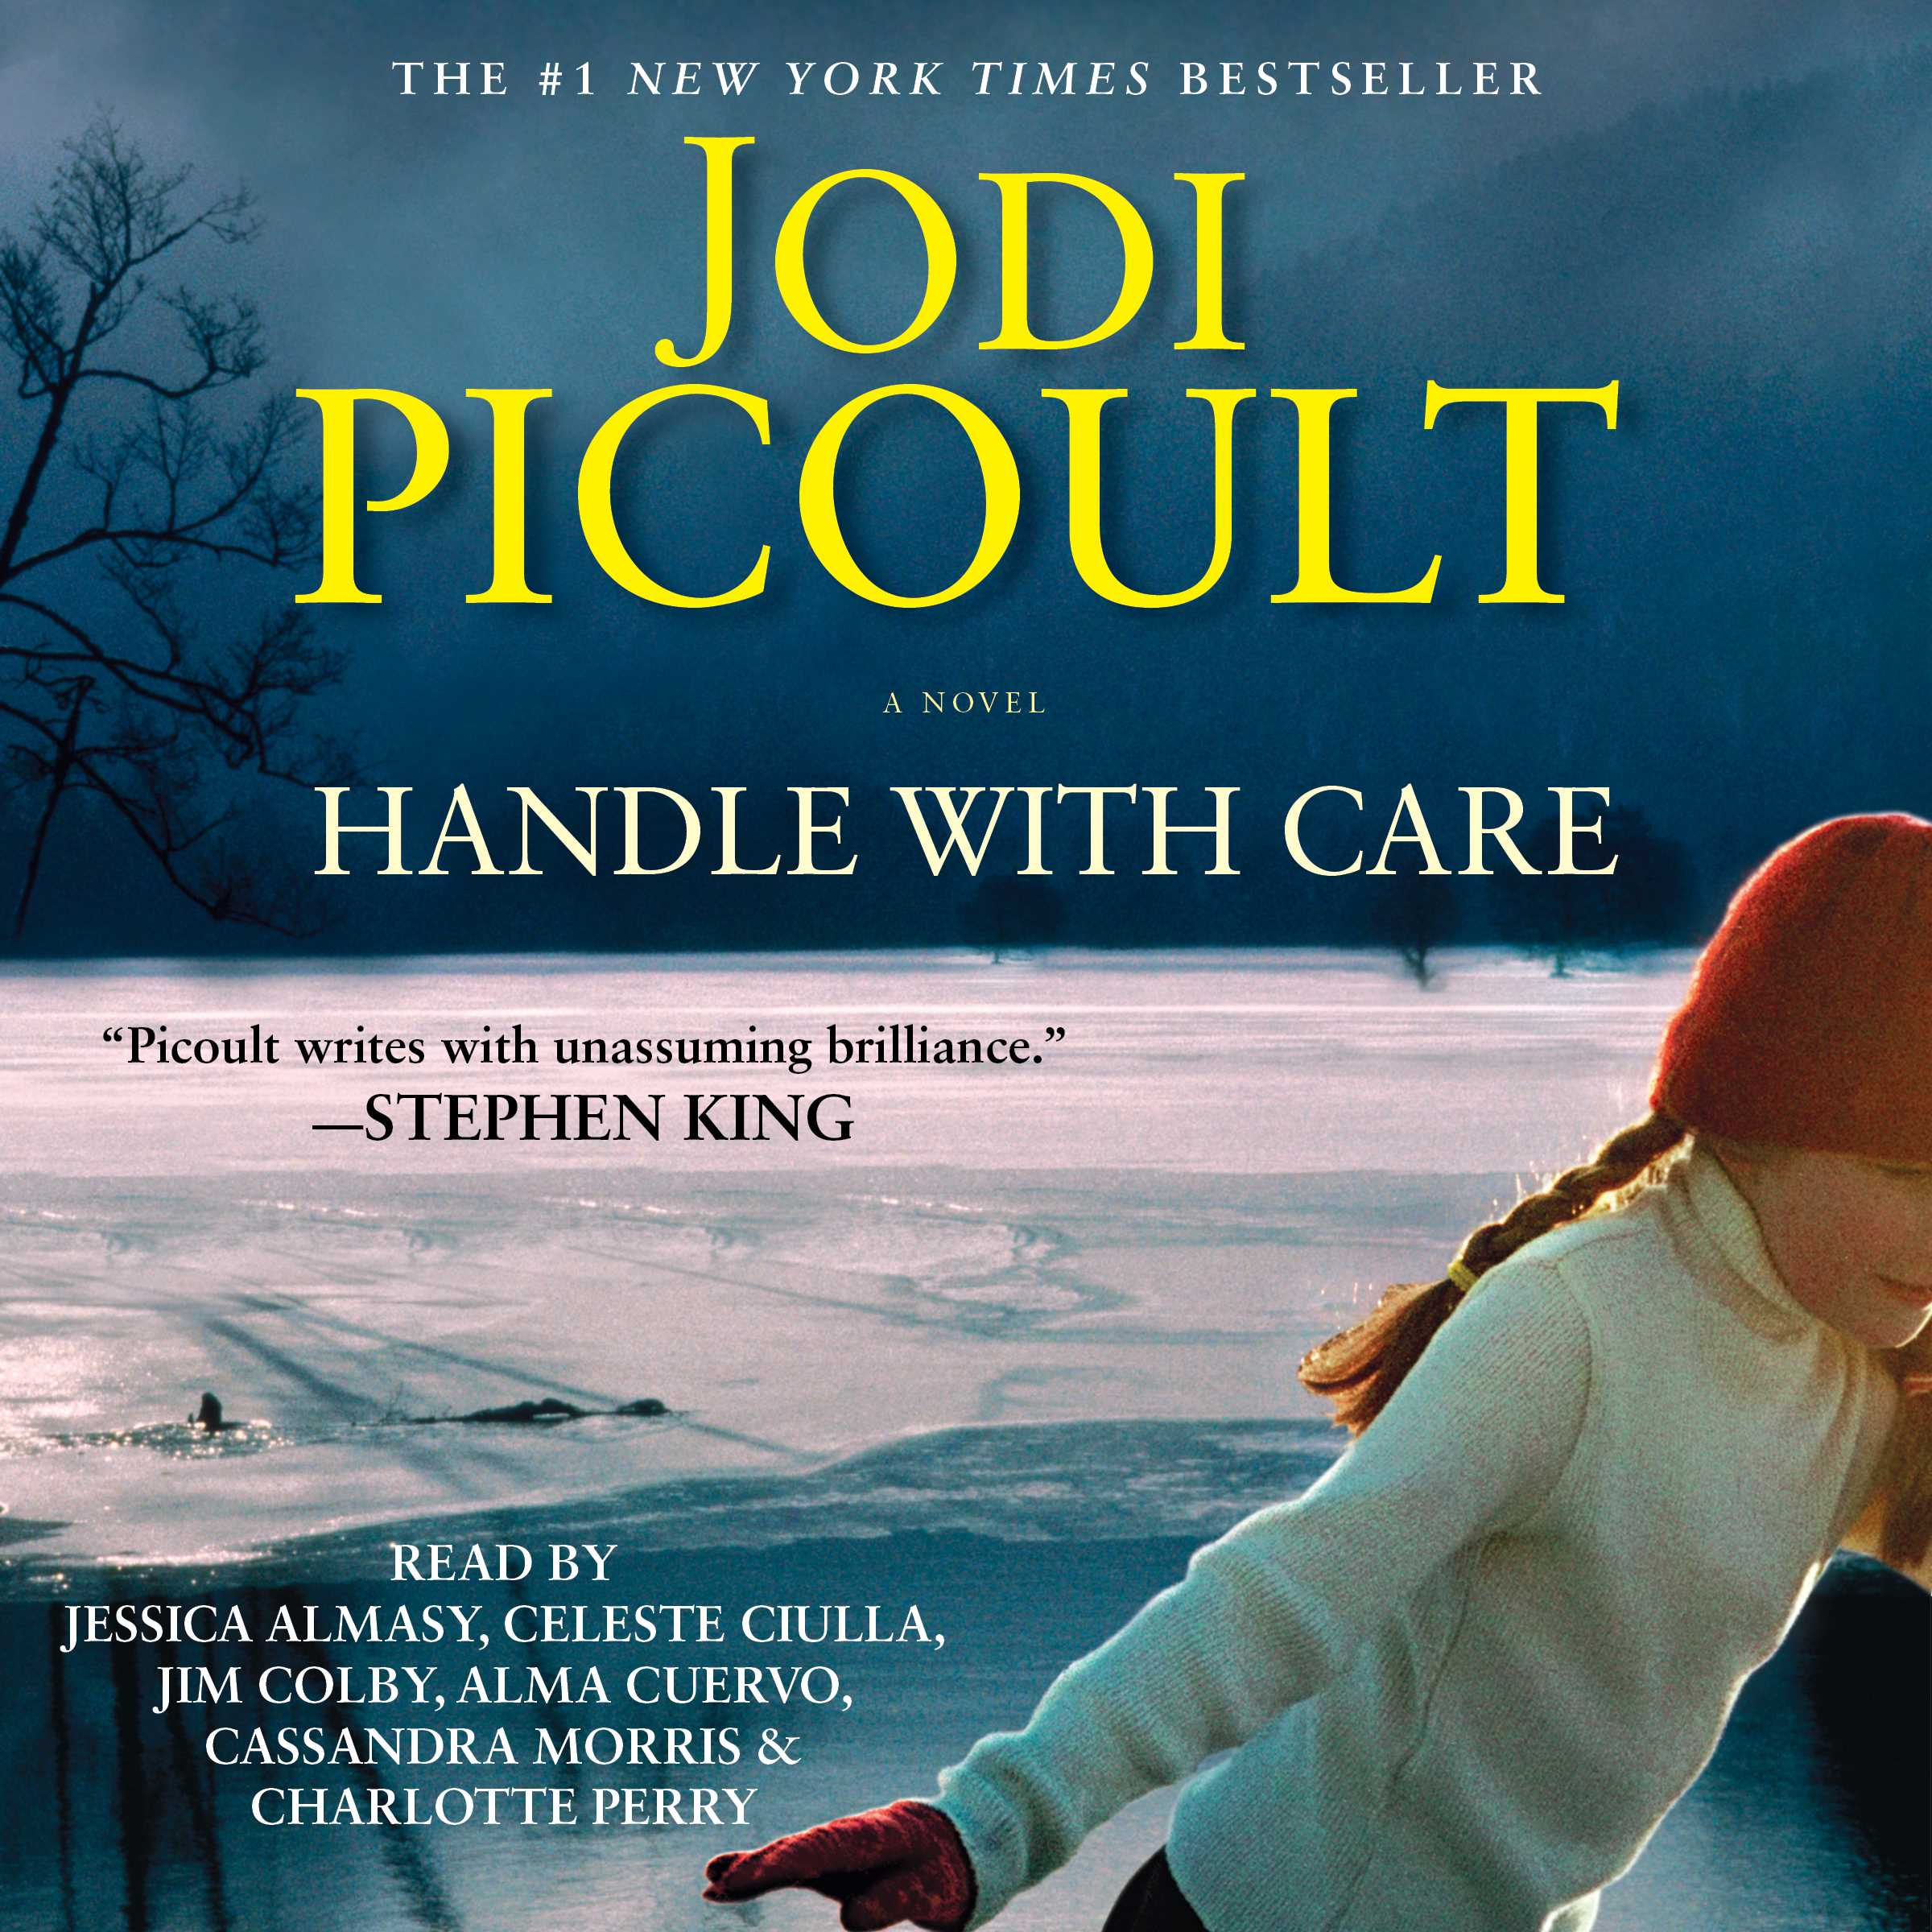 handle with care jodi picoult Buy, download and read handle with care ebook online in epub format for iphone, ipad, android, computer and mobile readers author: jodi picoult isbn: 9781439156308 publisher: atria books things break all the time day breaks, waves break, voices break promises break hearts break every expectant parent will tell you that they don't want a perfect baby, just a healthy one.